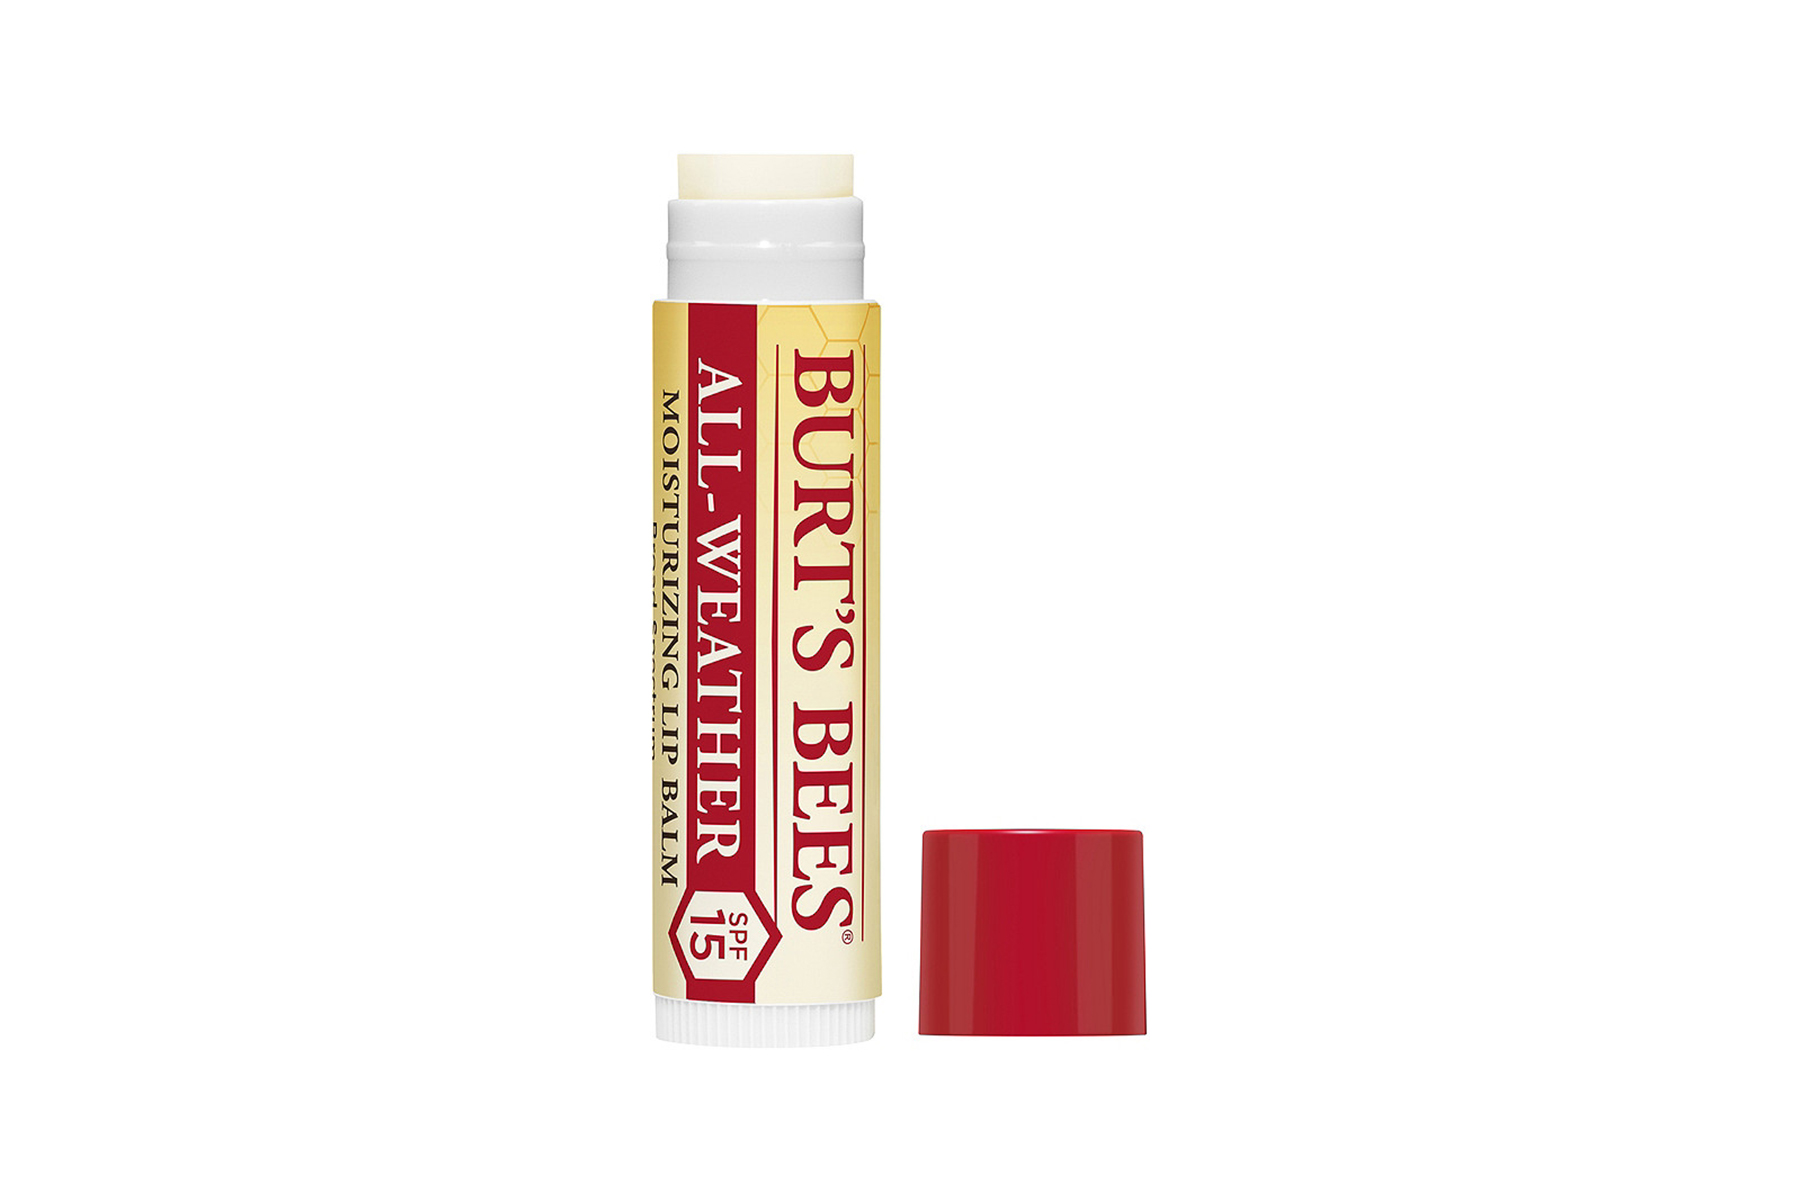 Burt's Bees 100 Percent Natural All-Weather Lip Balm